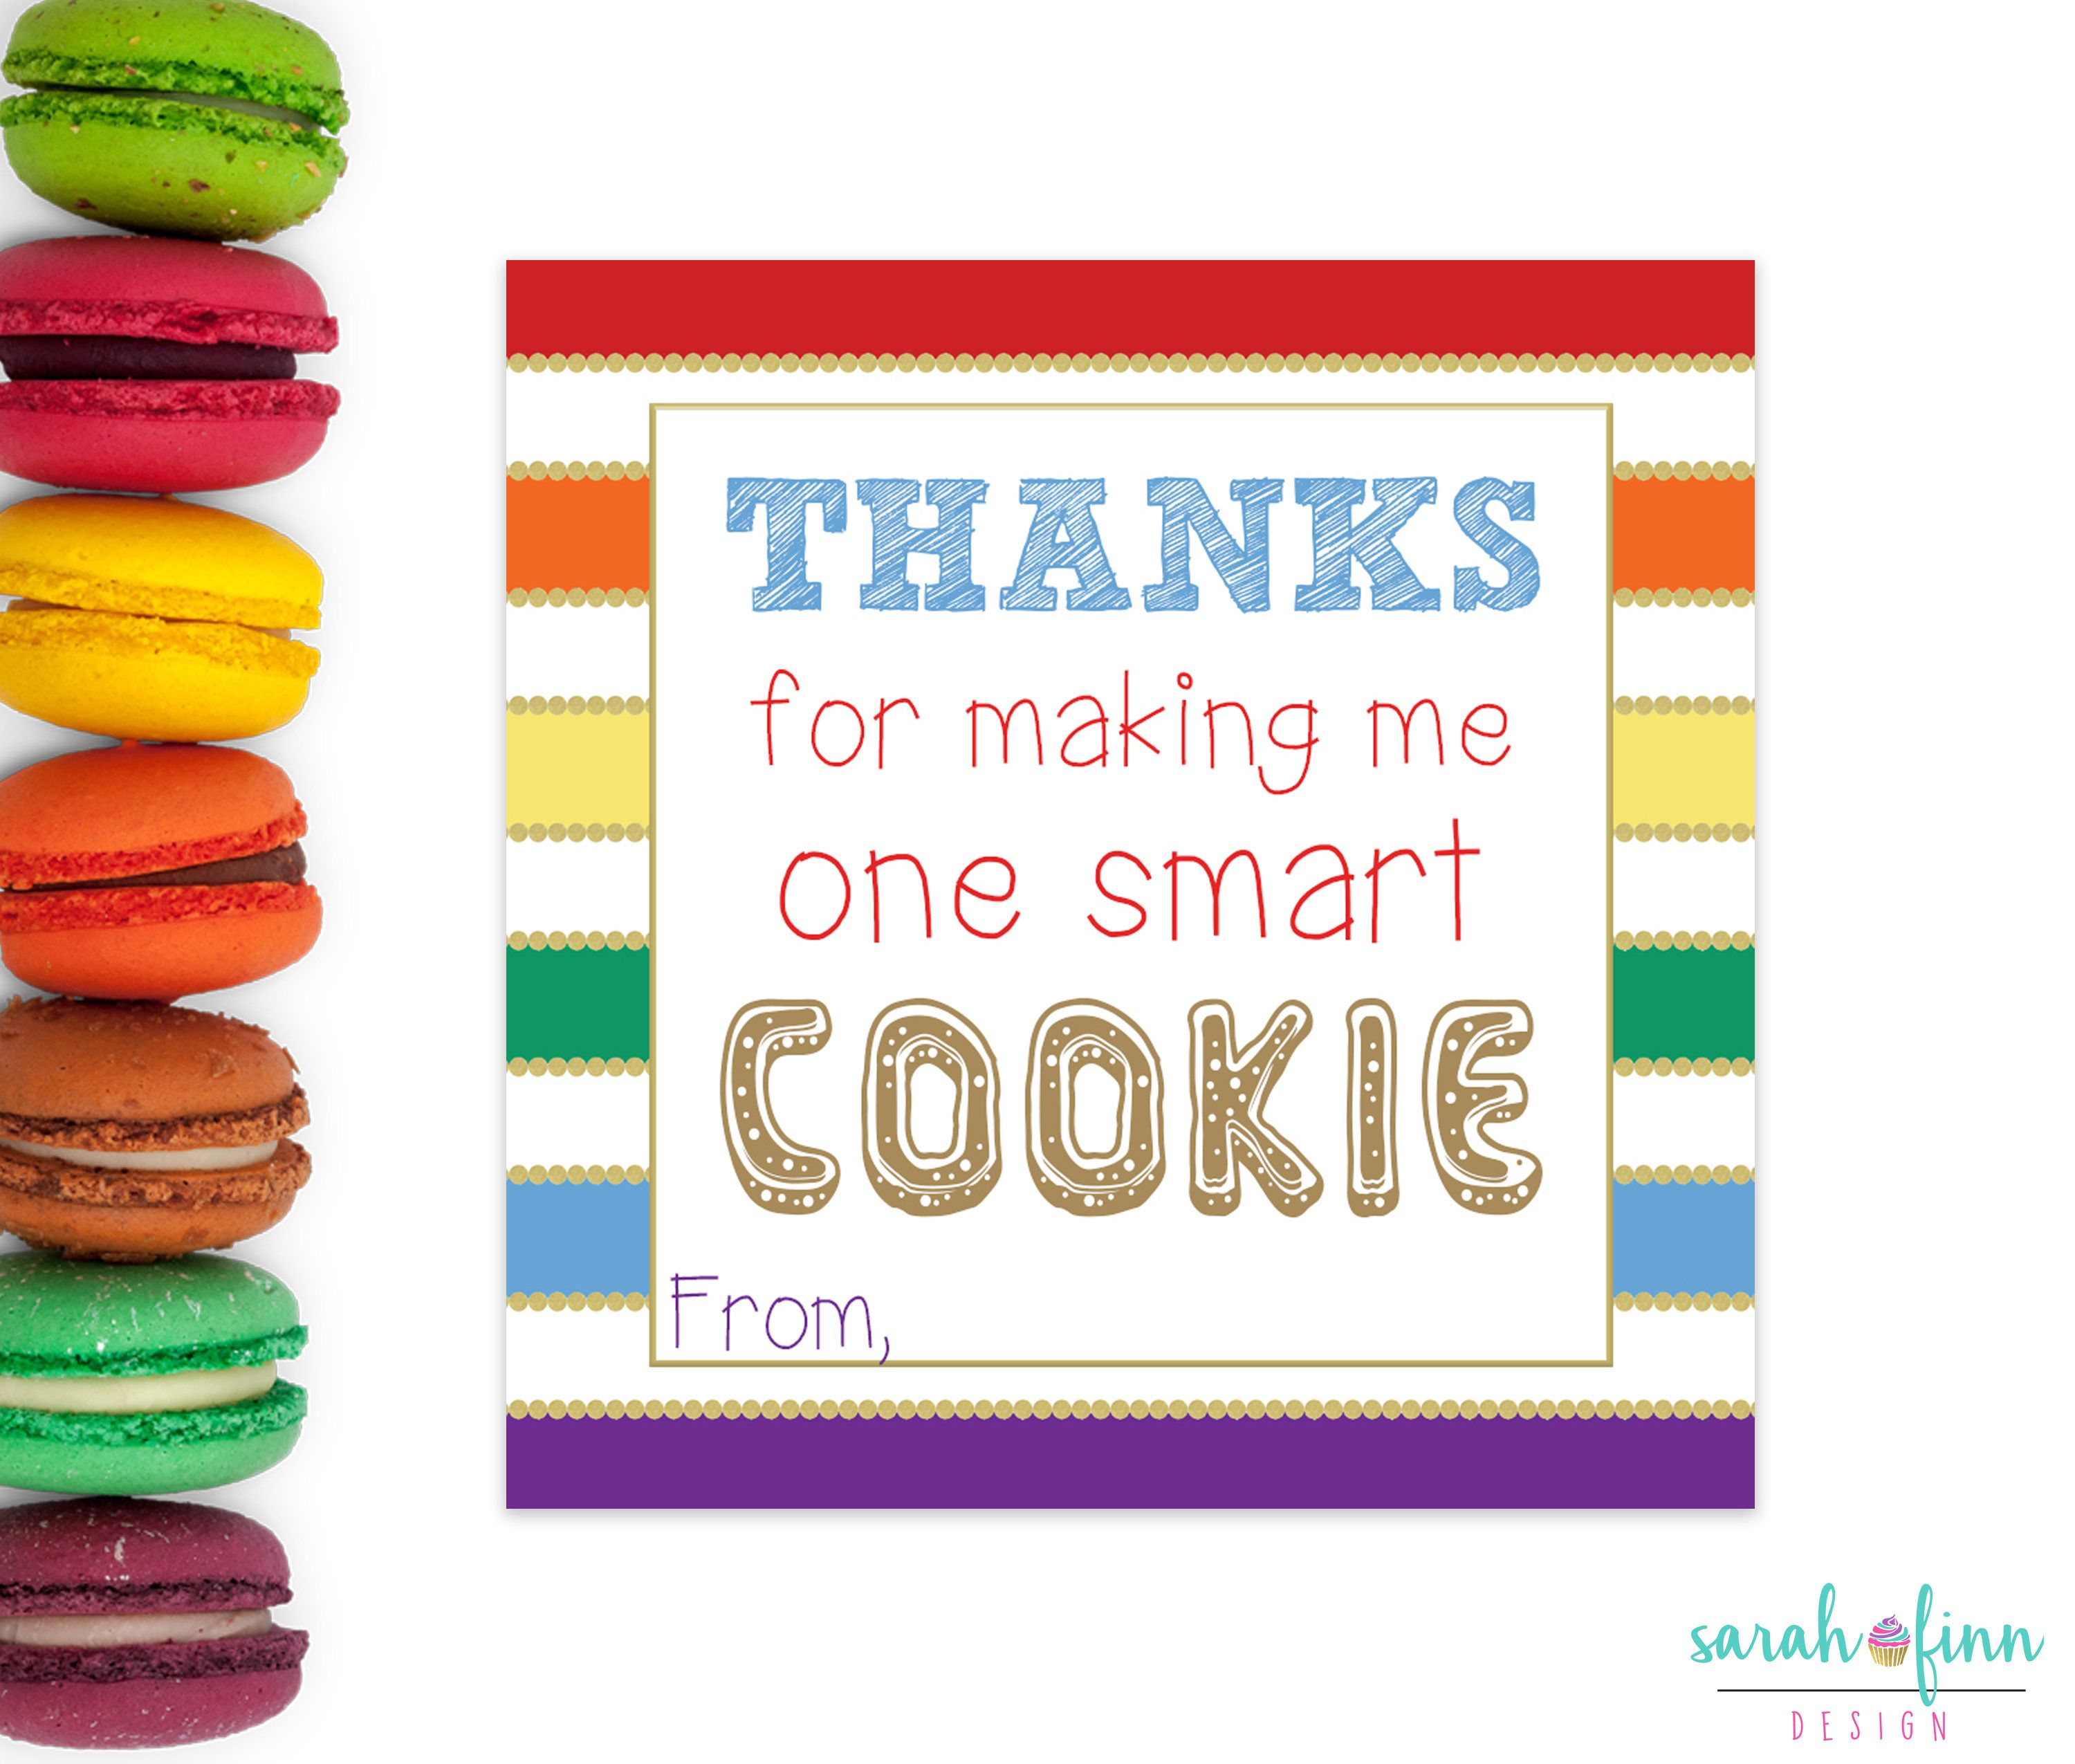 photo regarding Smart Cookie Printable identify Instructor Appreciation Owing for Creating Me Just one Good Cookie